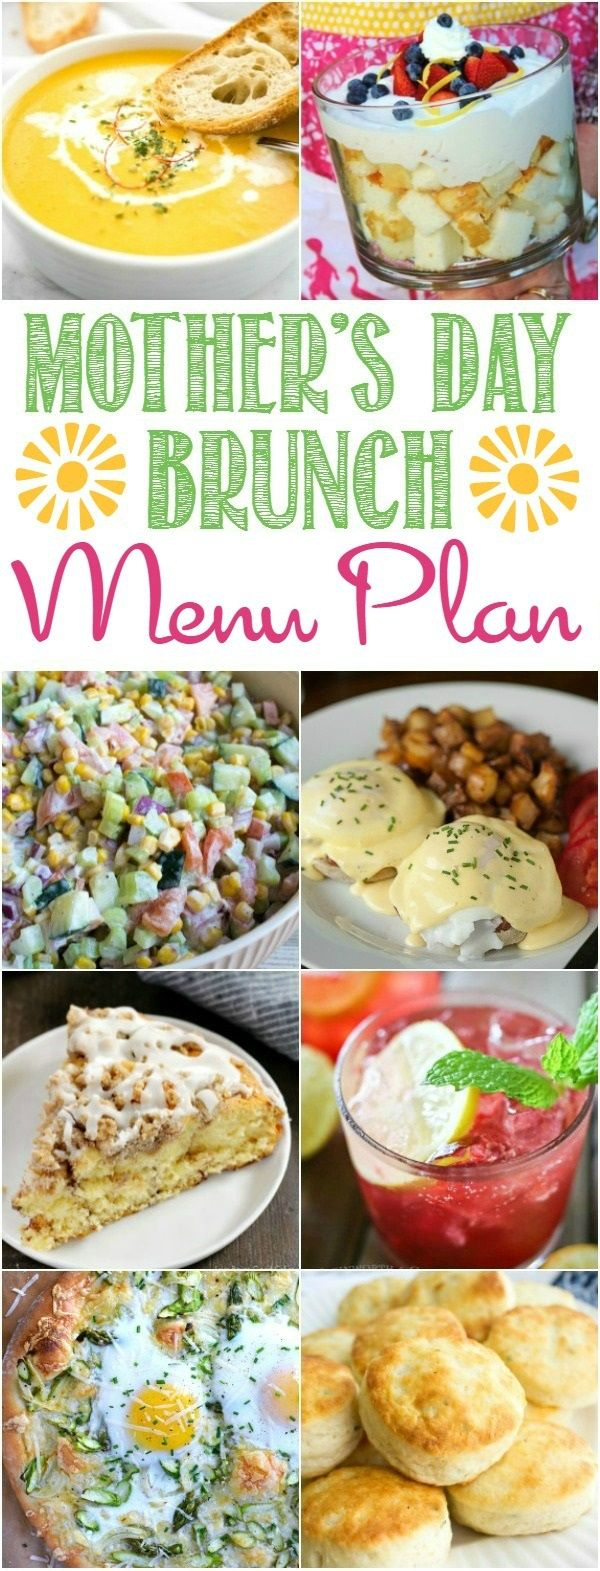 The Ultimate Mother's Day Brunch Menu Plan | cookingwithcurls.com